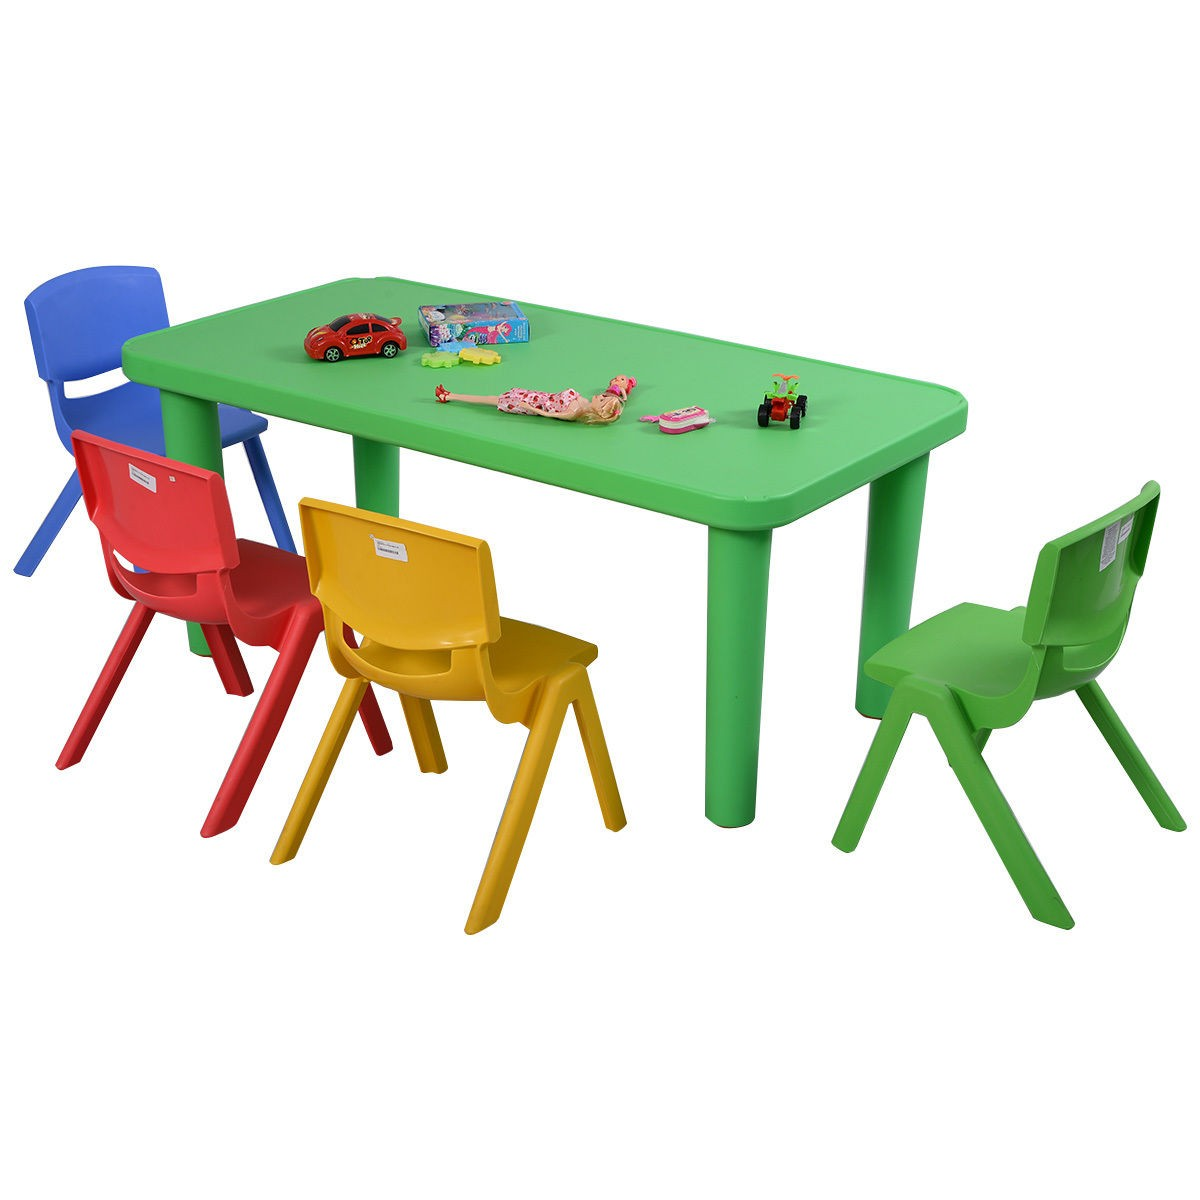 Fun Kids Plastic Table and 4 Chairs Set Colorful Play